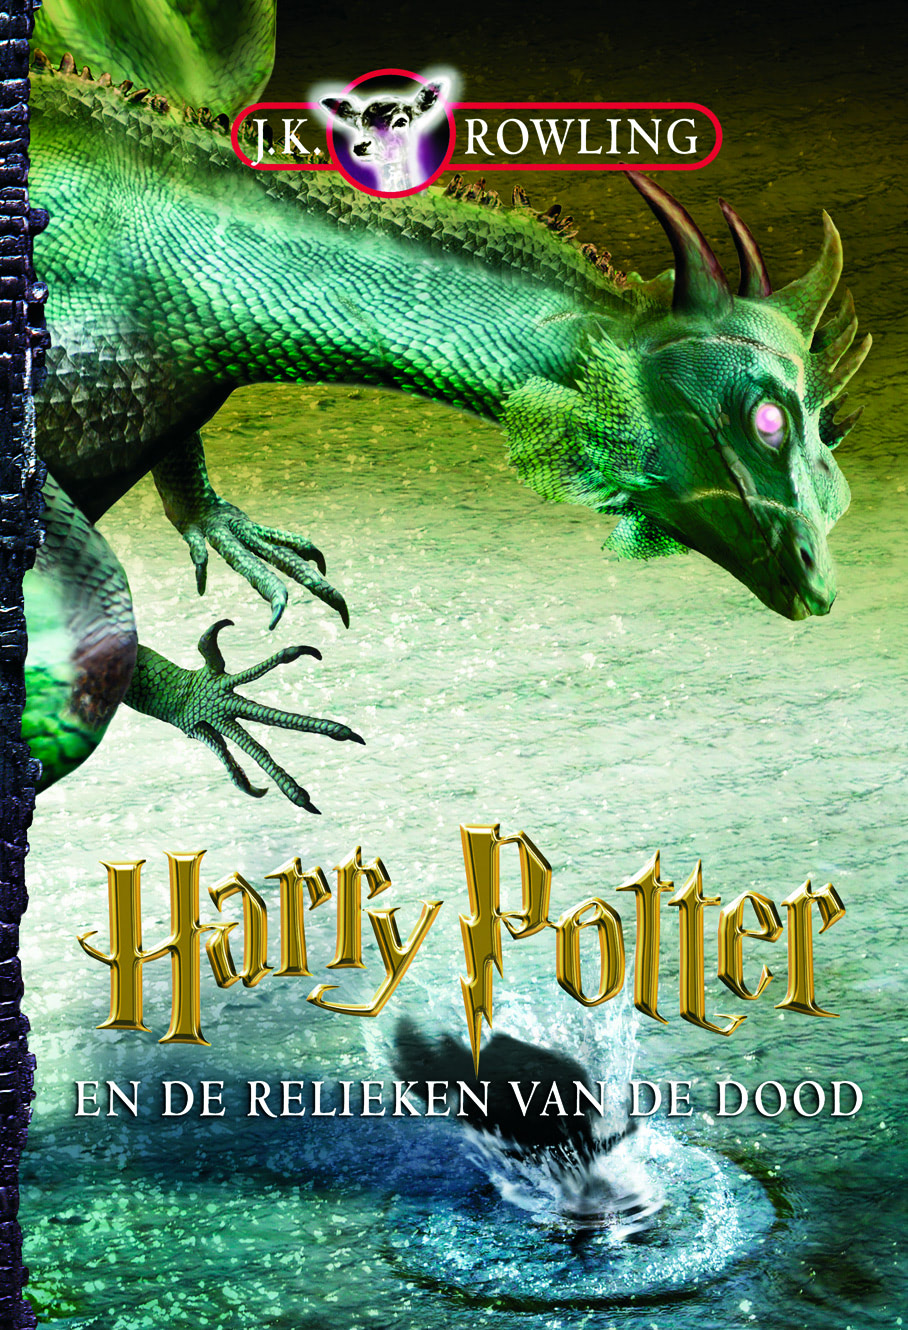 'Deathly Hallows' Dutch edition